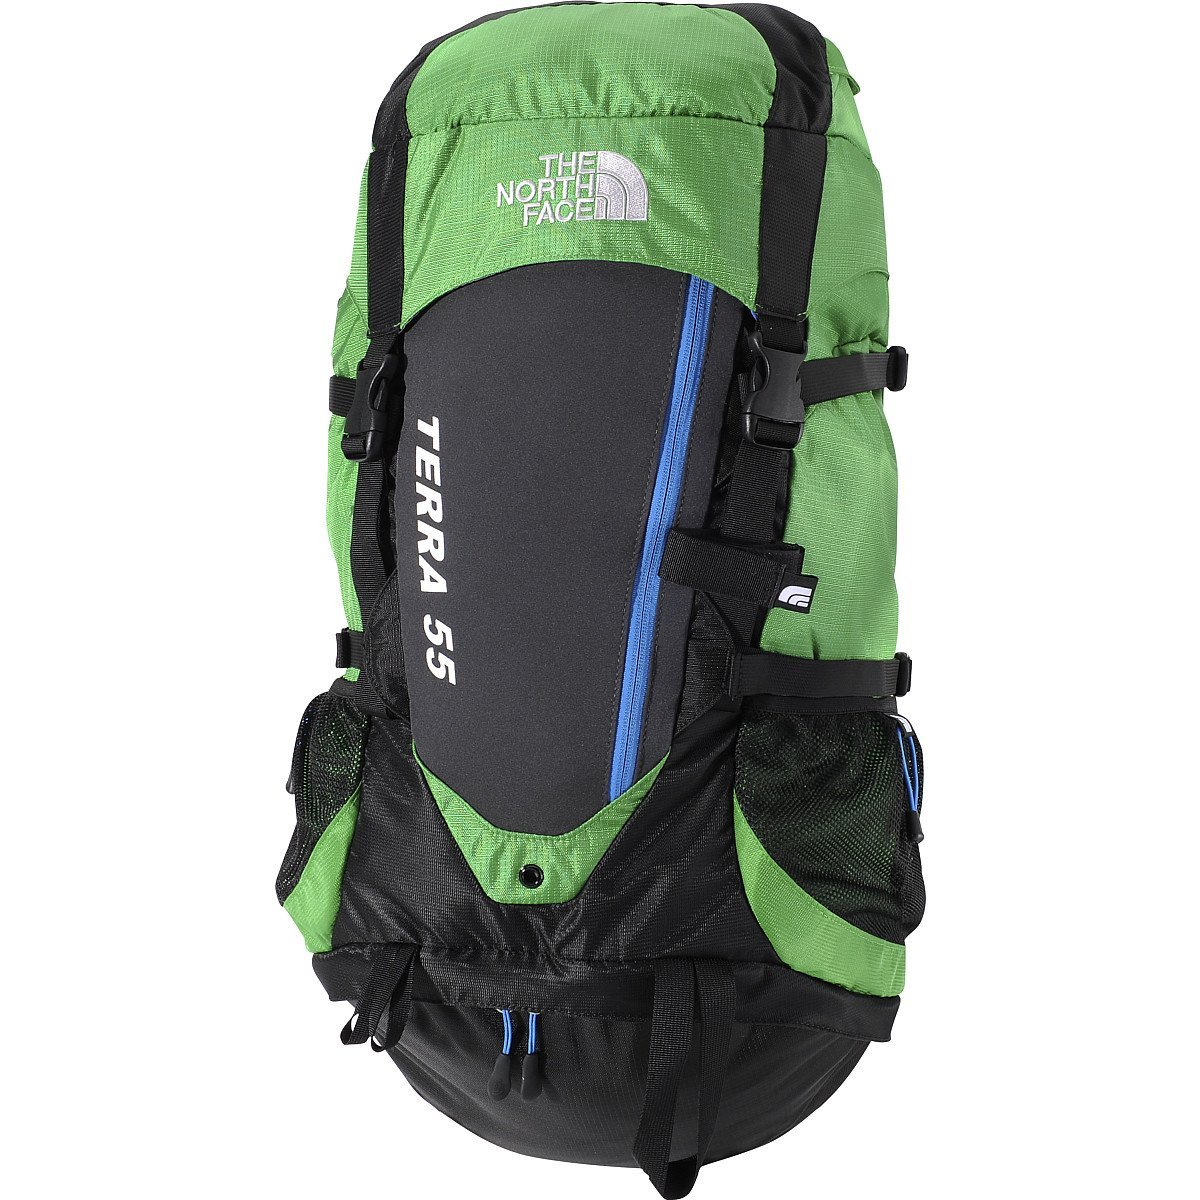 6d0e3322 Cheap The North Face Terra 55 Backpack, find The North Face Terra 55 ...